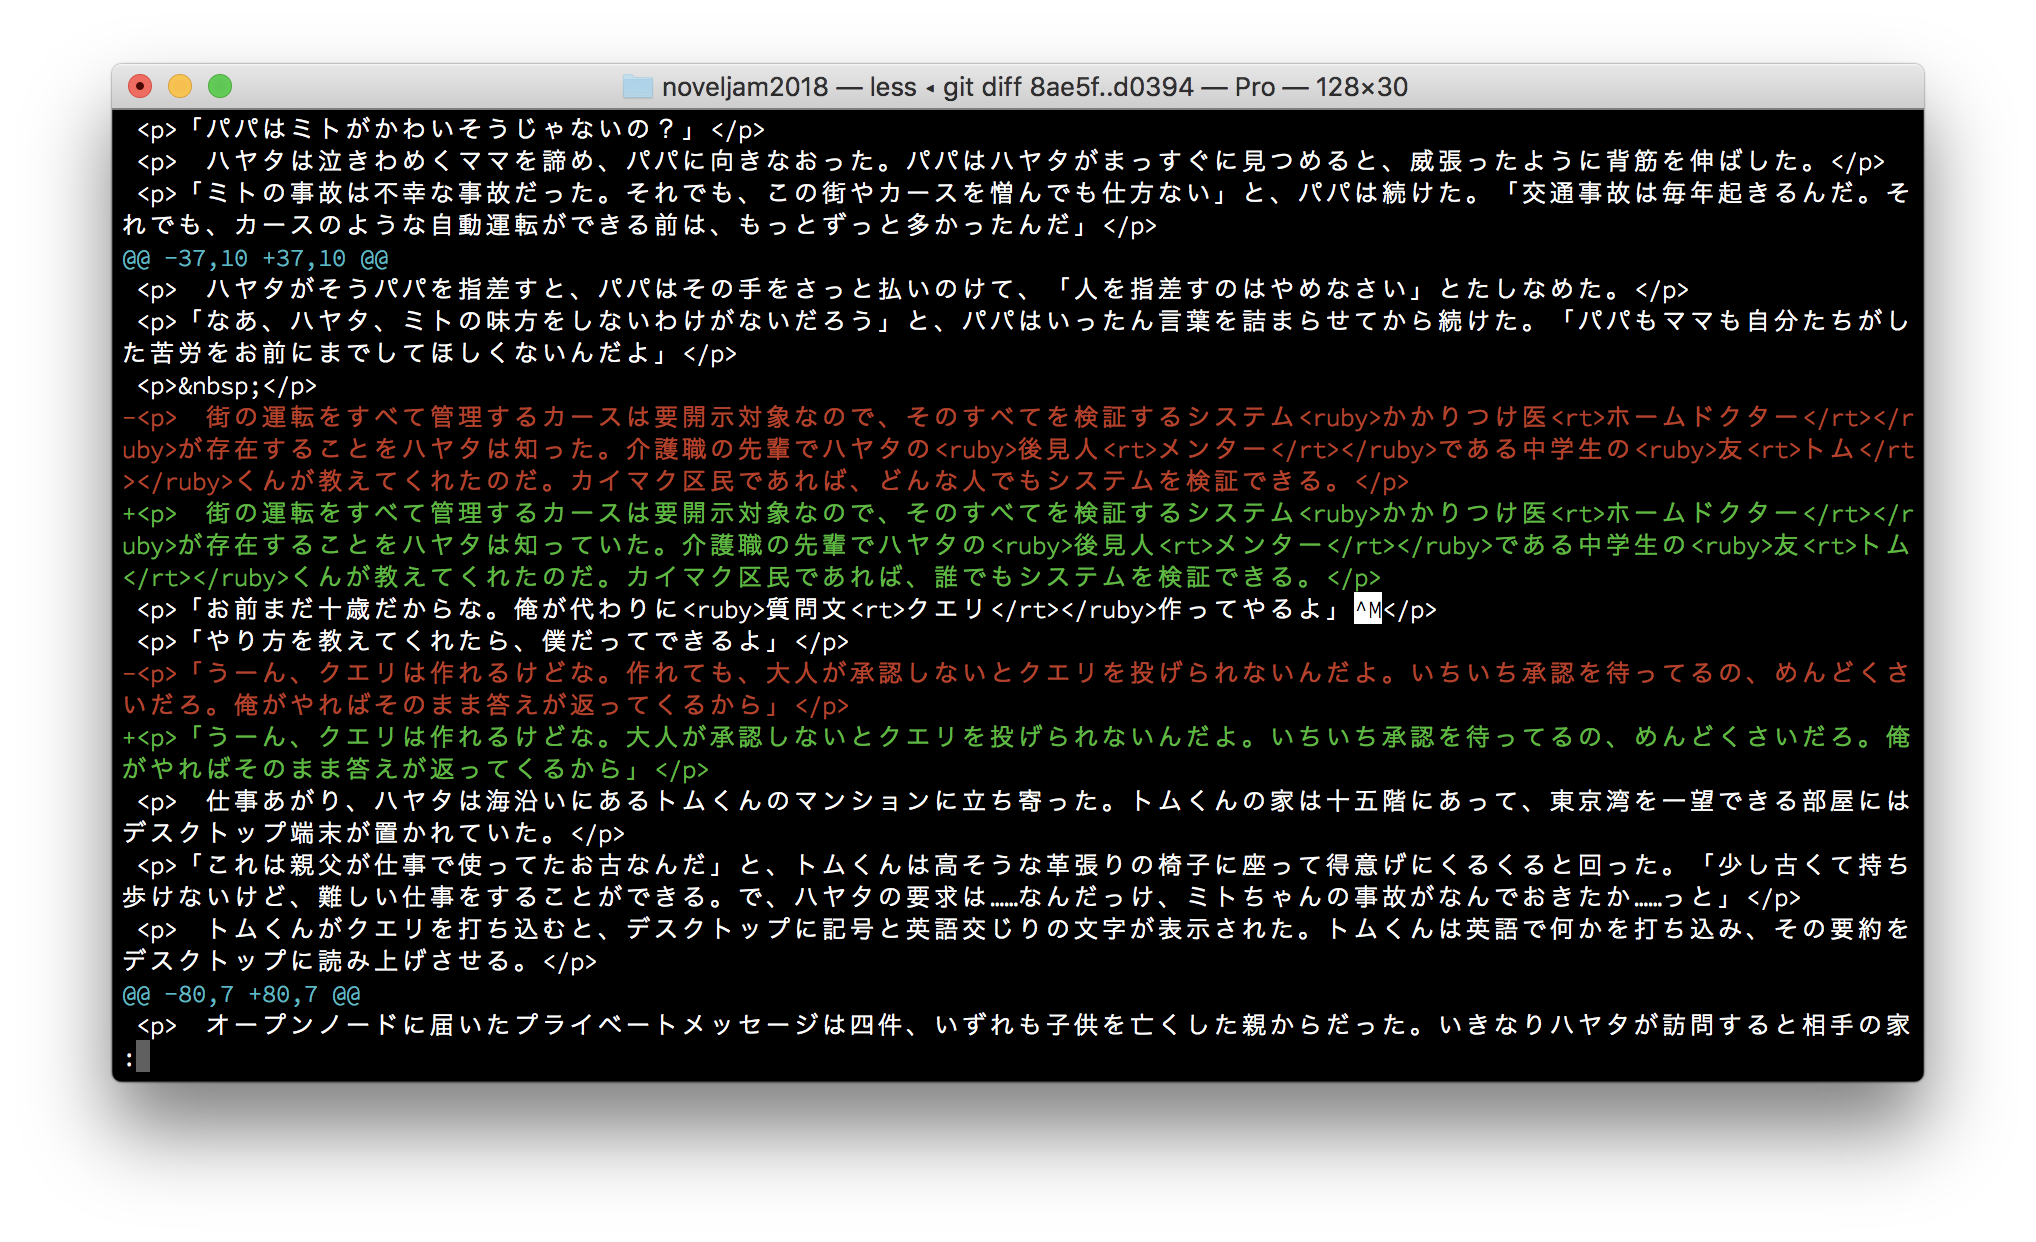 normal-git-diff-japanese.png